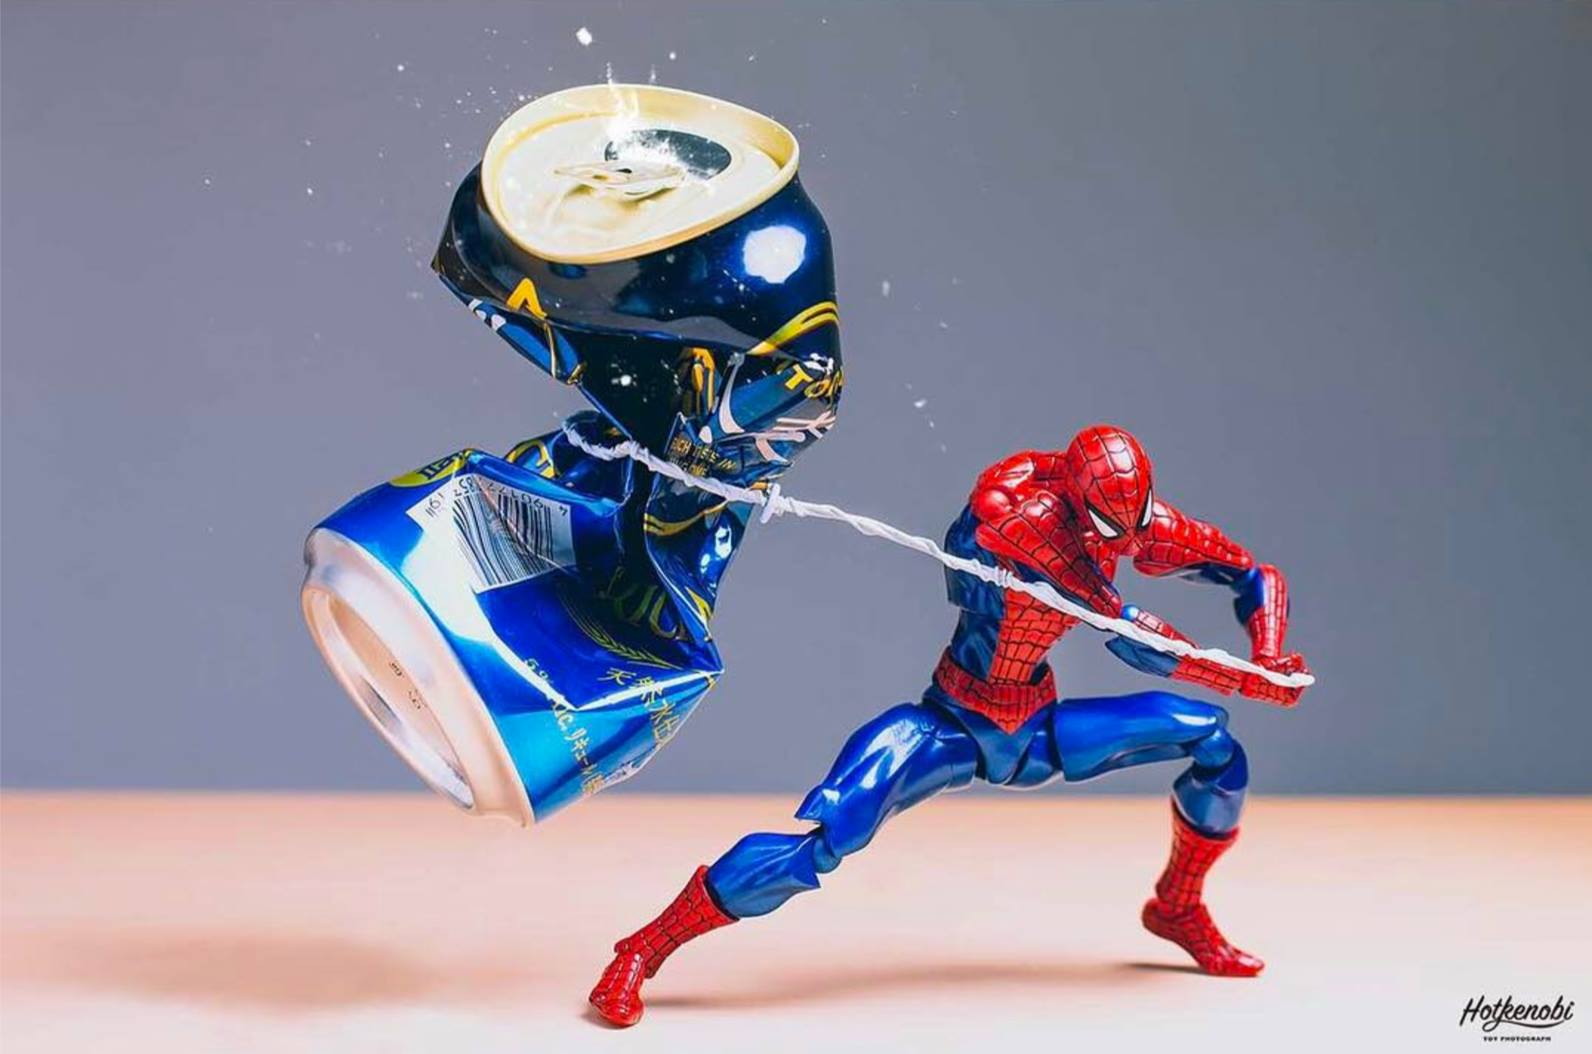 hot-kenobi-action-figures-beer-cans-photographs-03